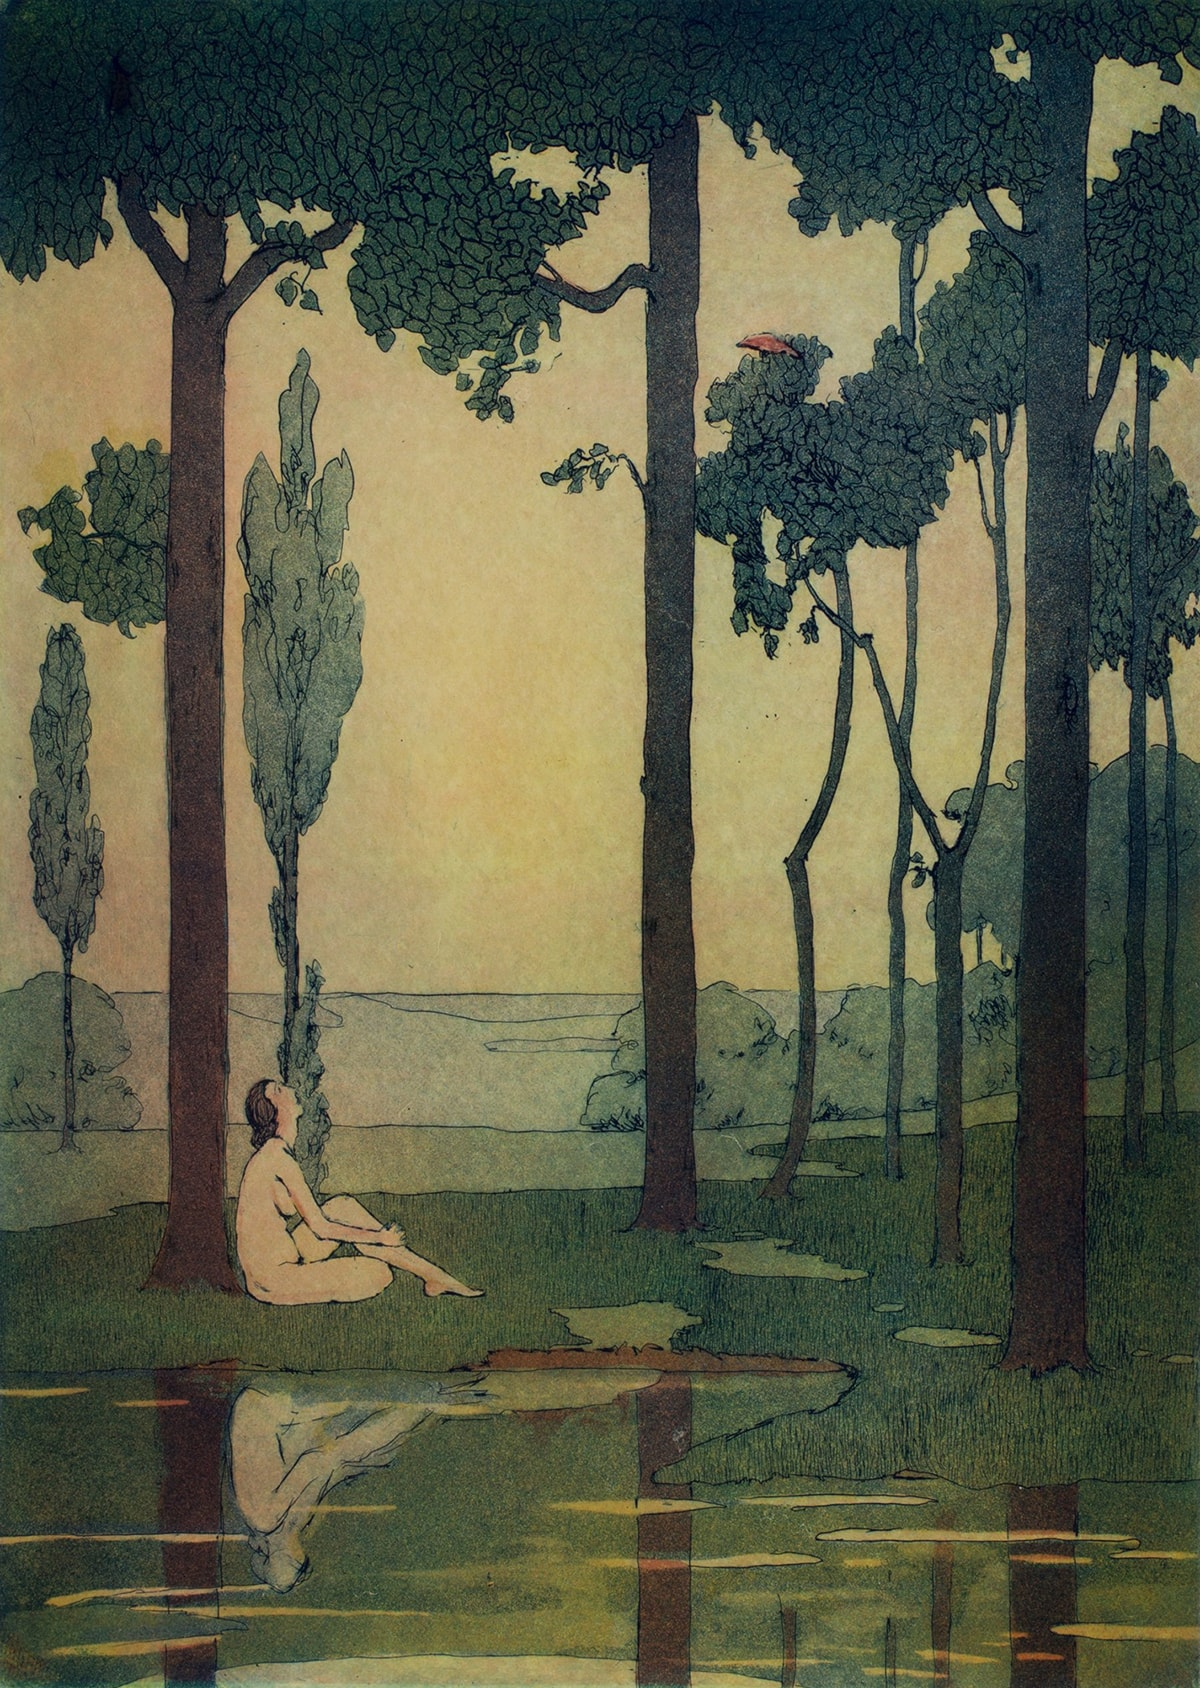 Image description: Beatrice S. Levy, Song of Summer, 1914, color etching,14 x 10 inches. Vertical rectangular color print in languid hues of greens and yellows. A pale, nude, female seated figure on a grassy bank gazes up into a canopy of dark green foliage at a small, perched red bird. The figure sits with her back against a dark tree trunk, one of three, with much smaller trees in the background. Her reflection is mirrored in a green-yellow body of water at the foreground of the scene. In the distant background there are clusters of trees rendered in a pale blue green with a pale clear sky contrasting the darker subjects in the foreground.